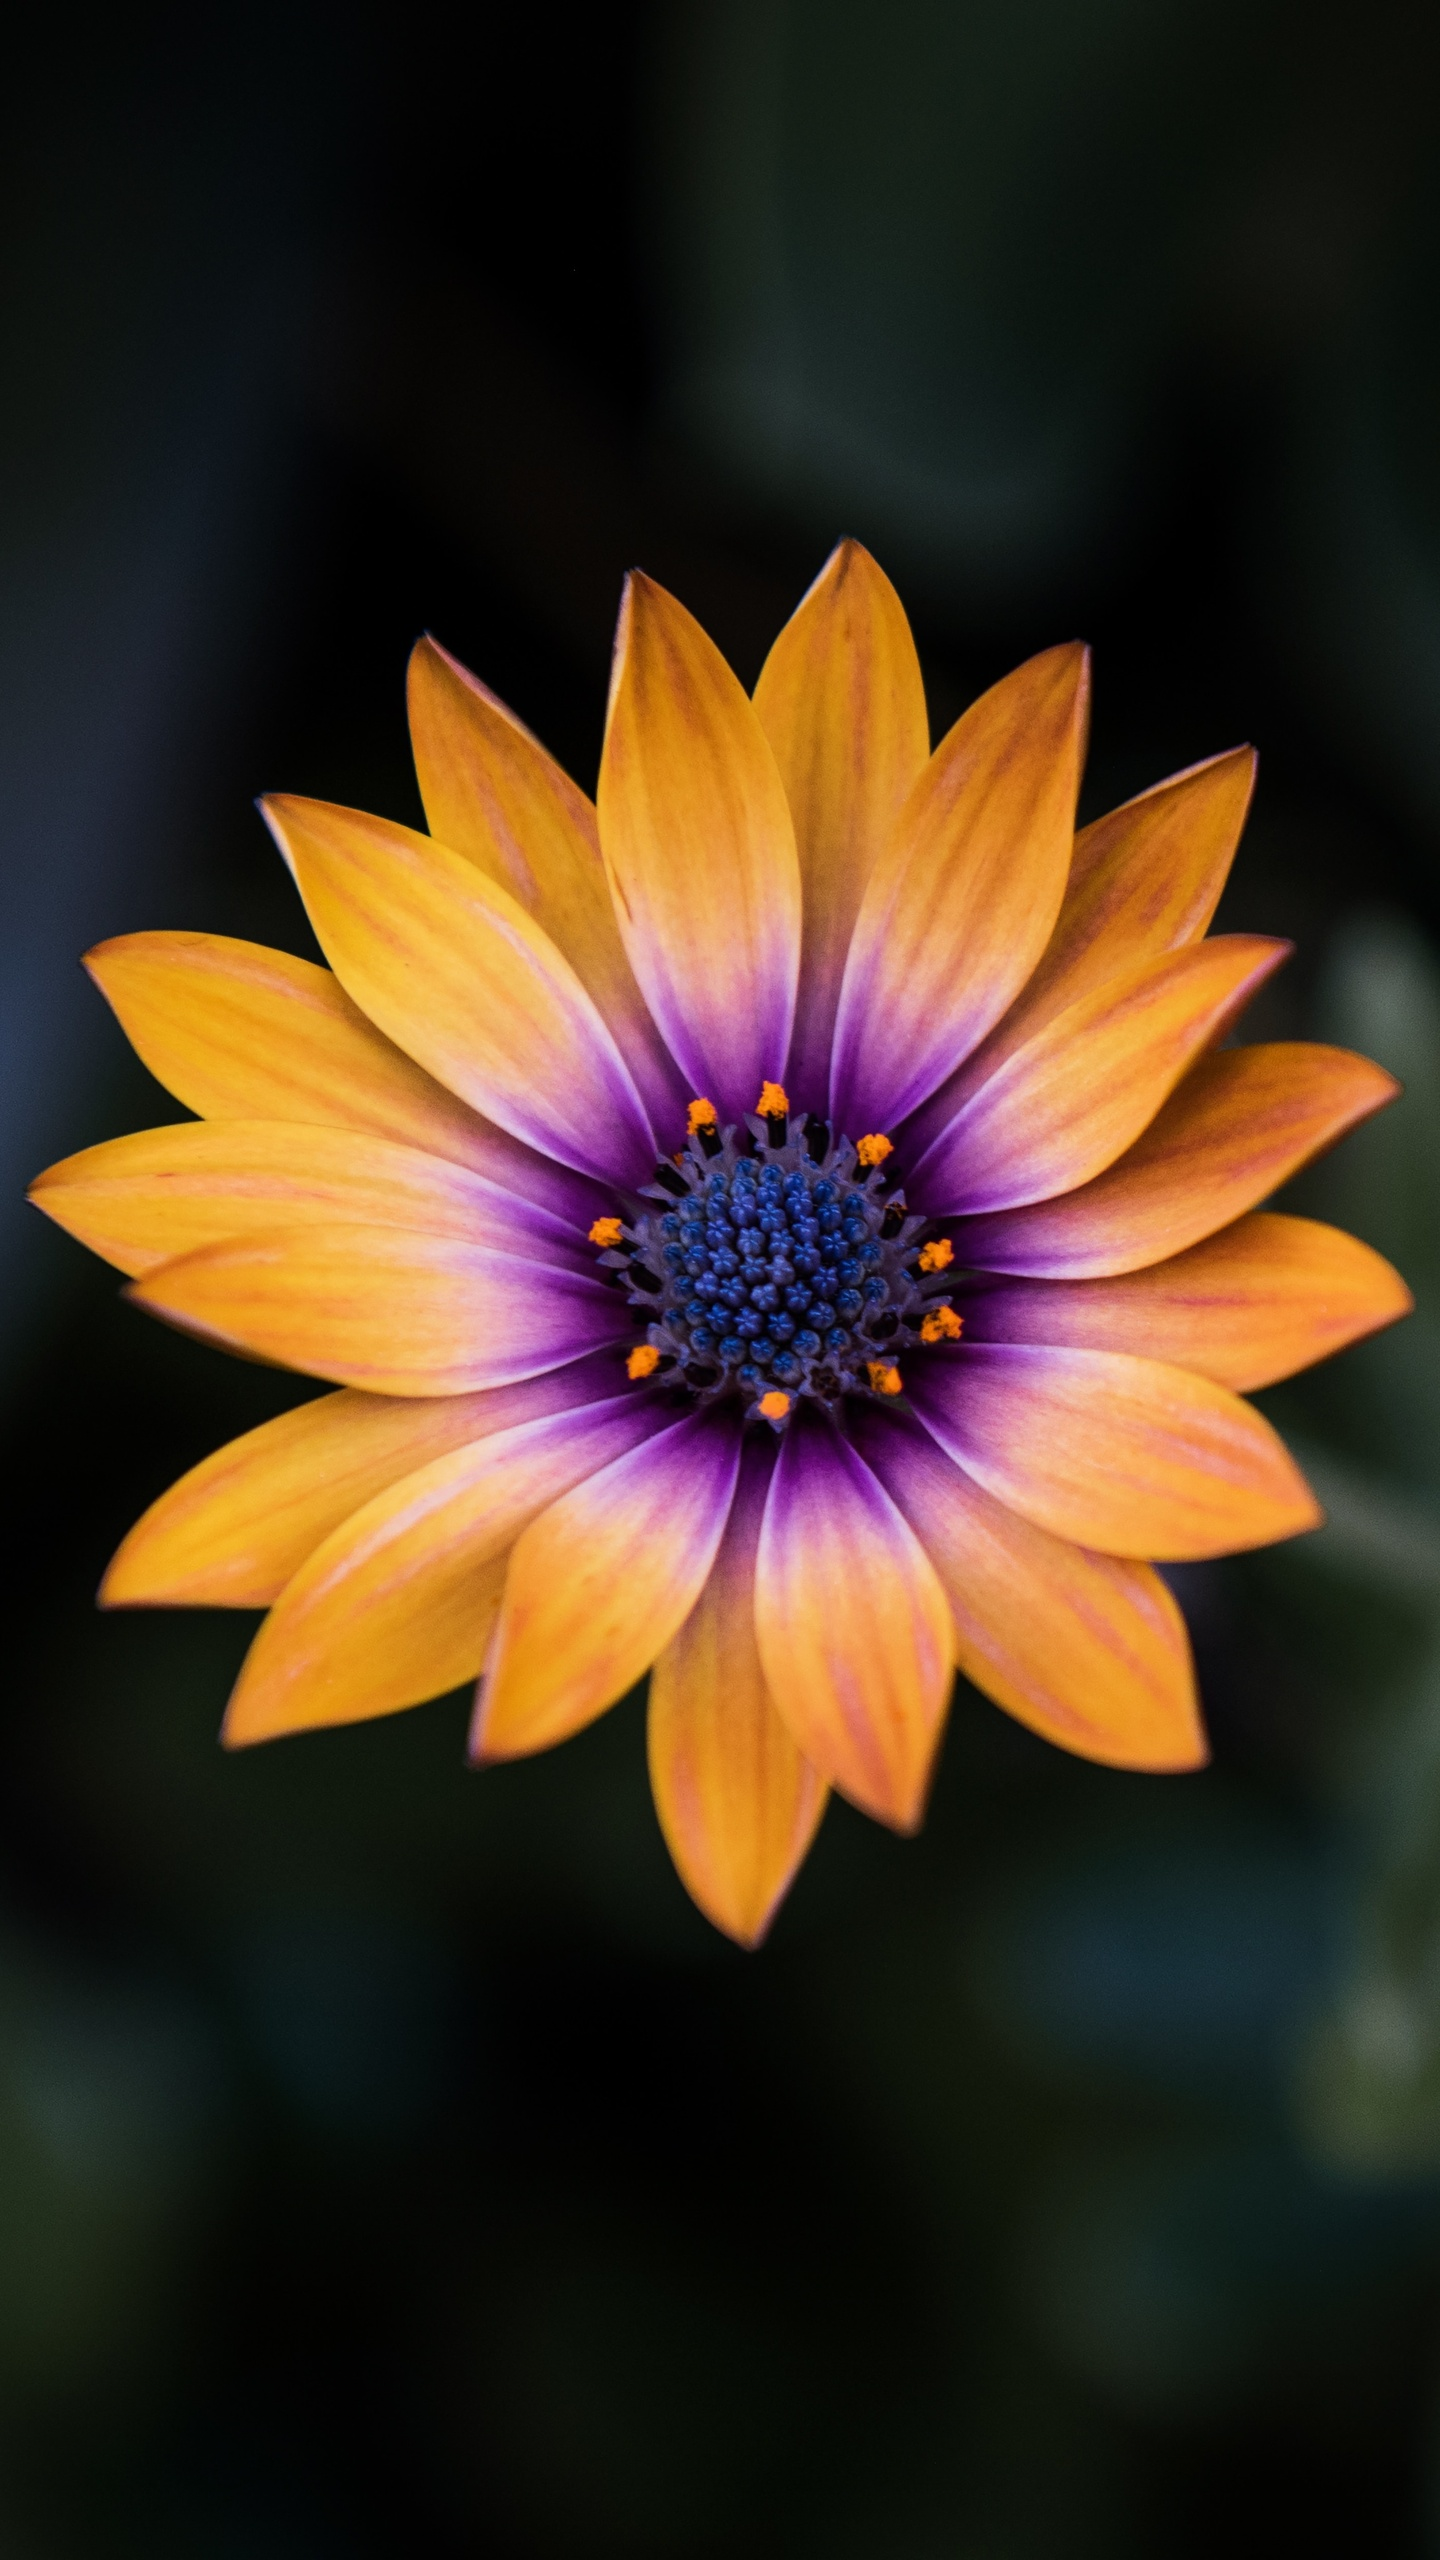 bright-orange-purple-flower-8k-8z.jpg